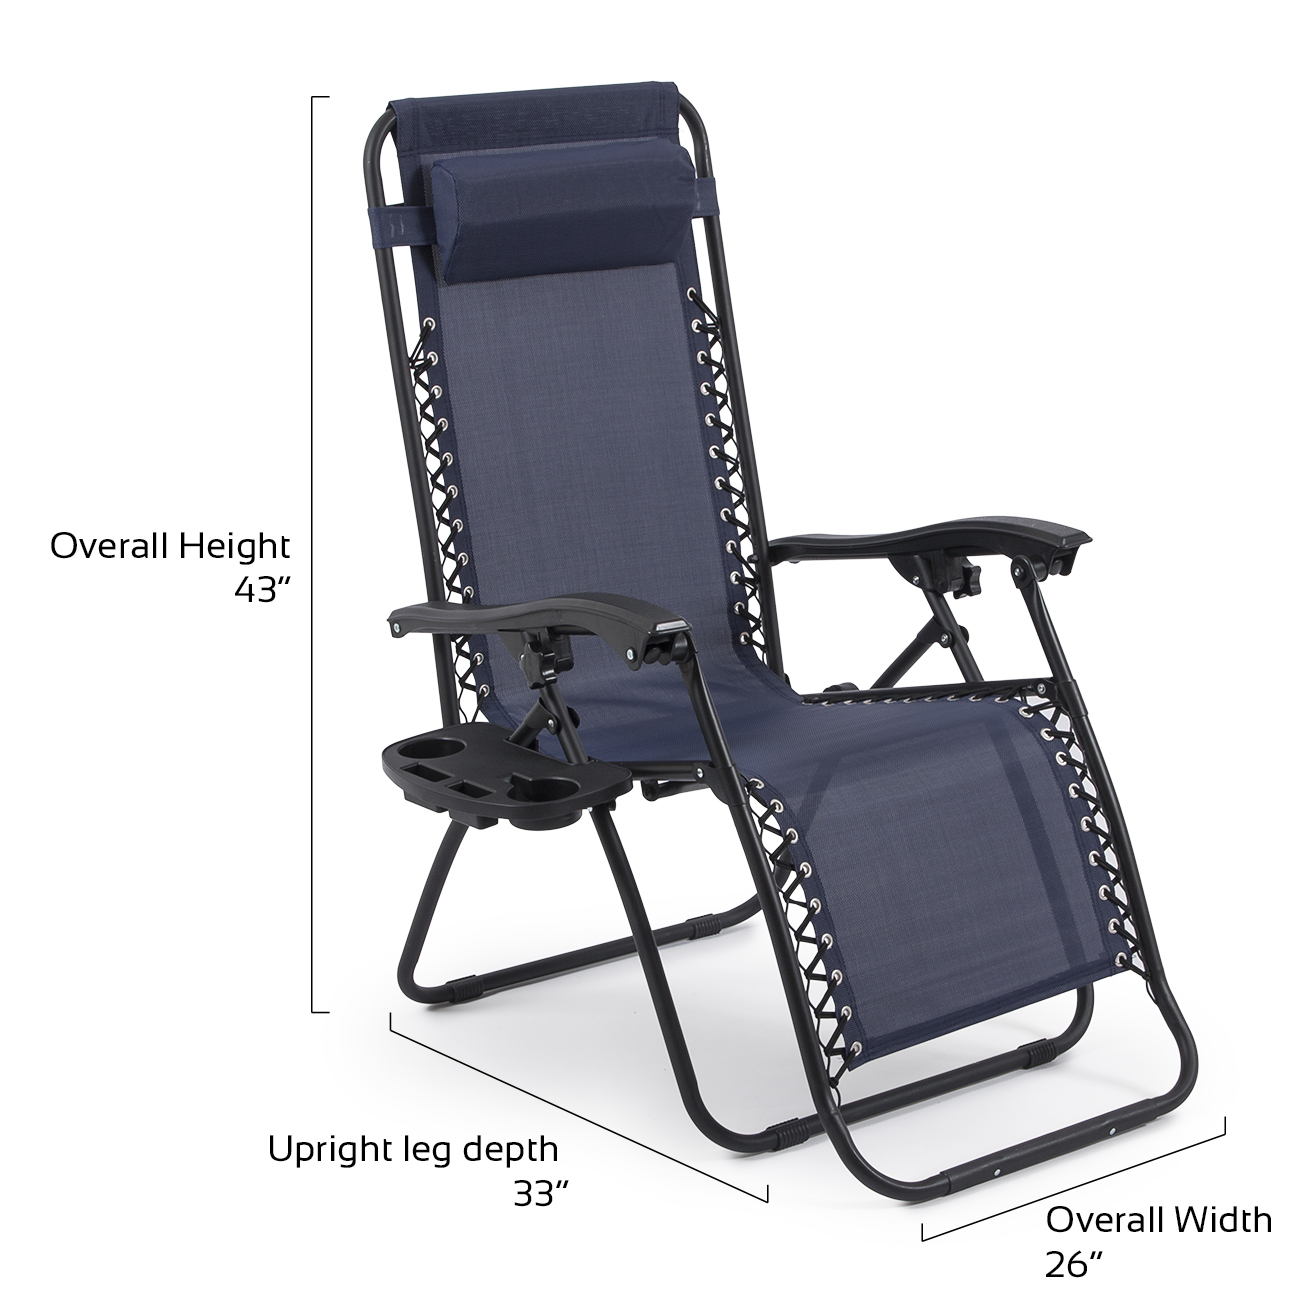 Patio gravity chair - 2 Folding Zero Gravity Reclining Lounge Chairs Utility